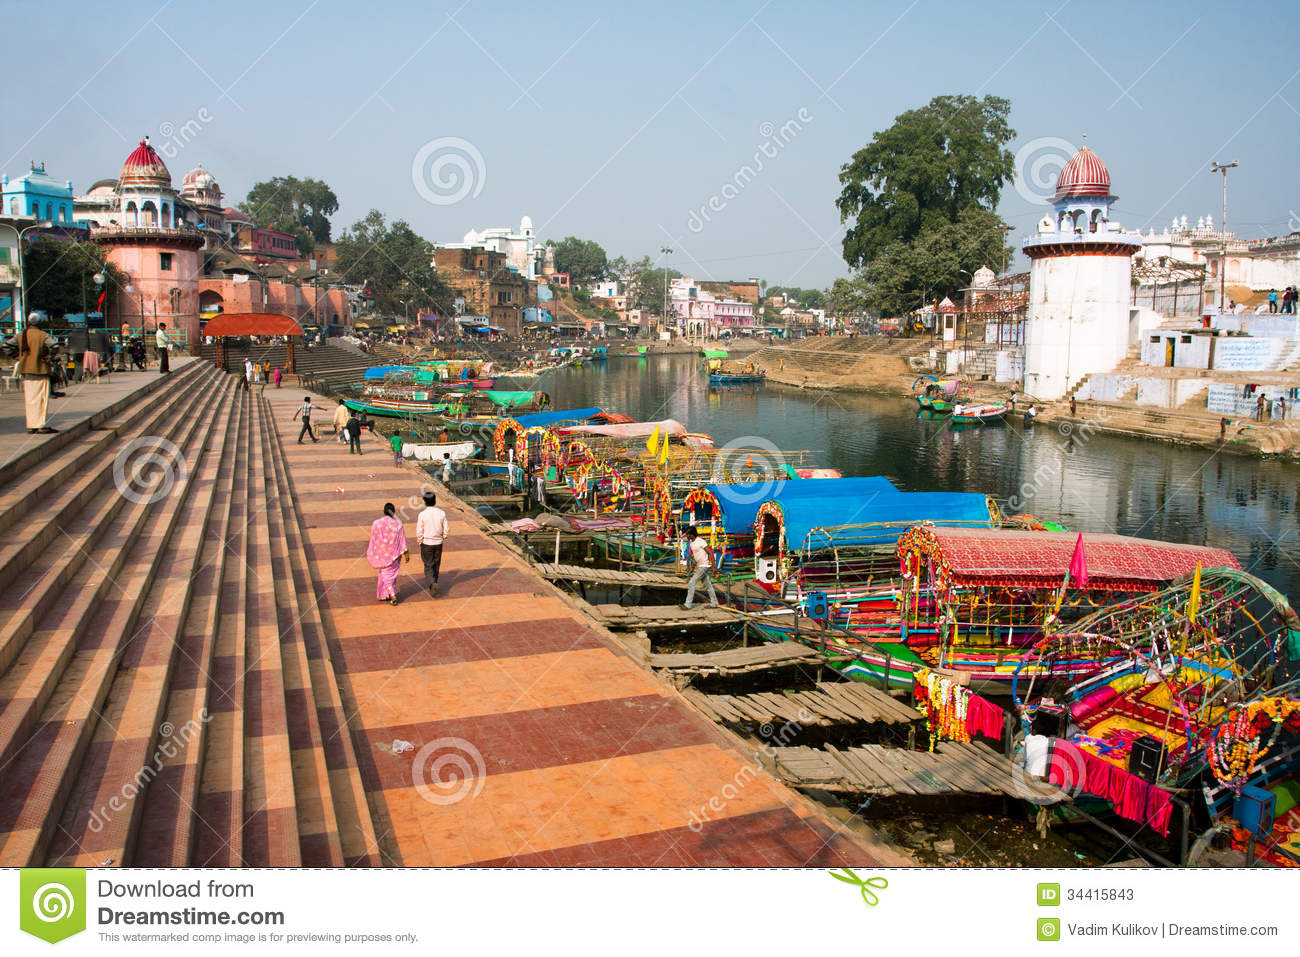 Colorful Boats Wait For The Passengers At The River Docks Of Indian City Editorial Stock Photo ...